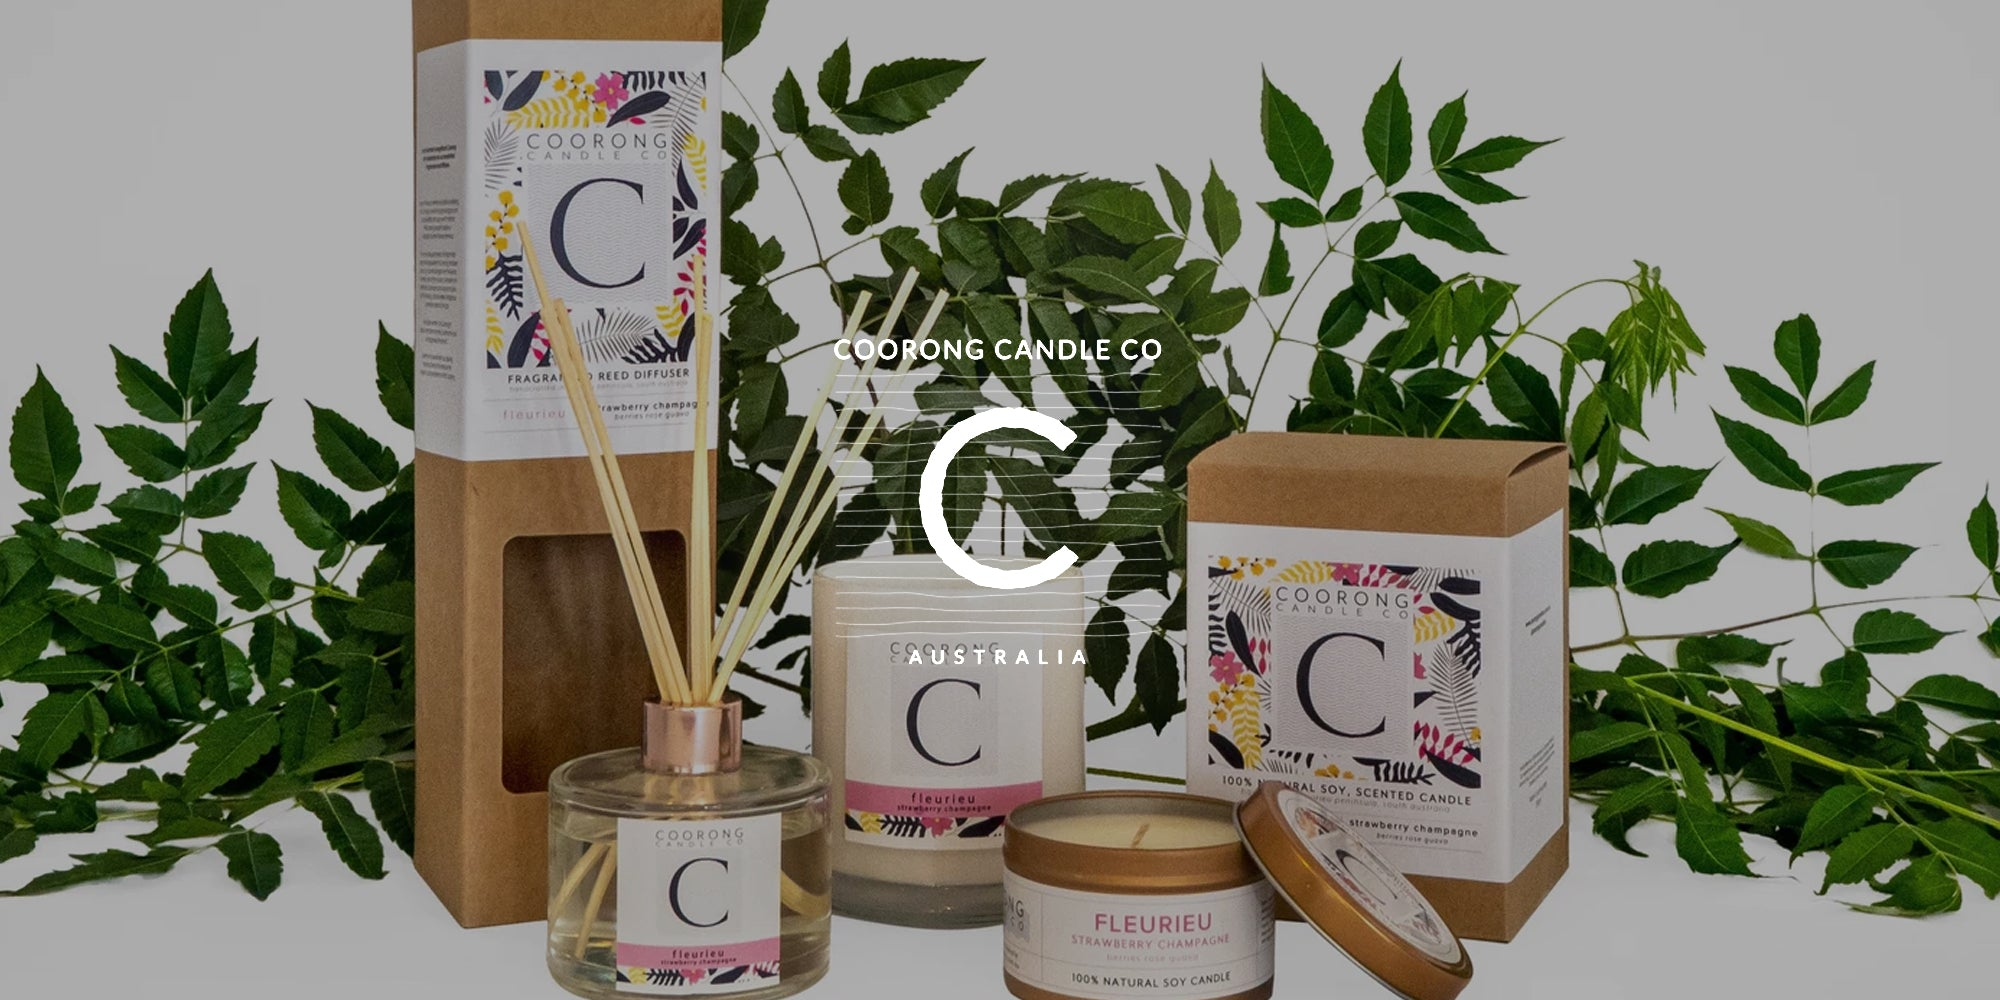 Coorong Candles Co.